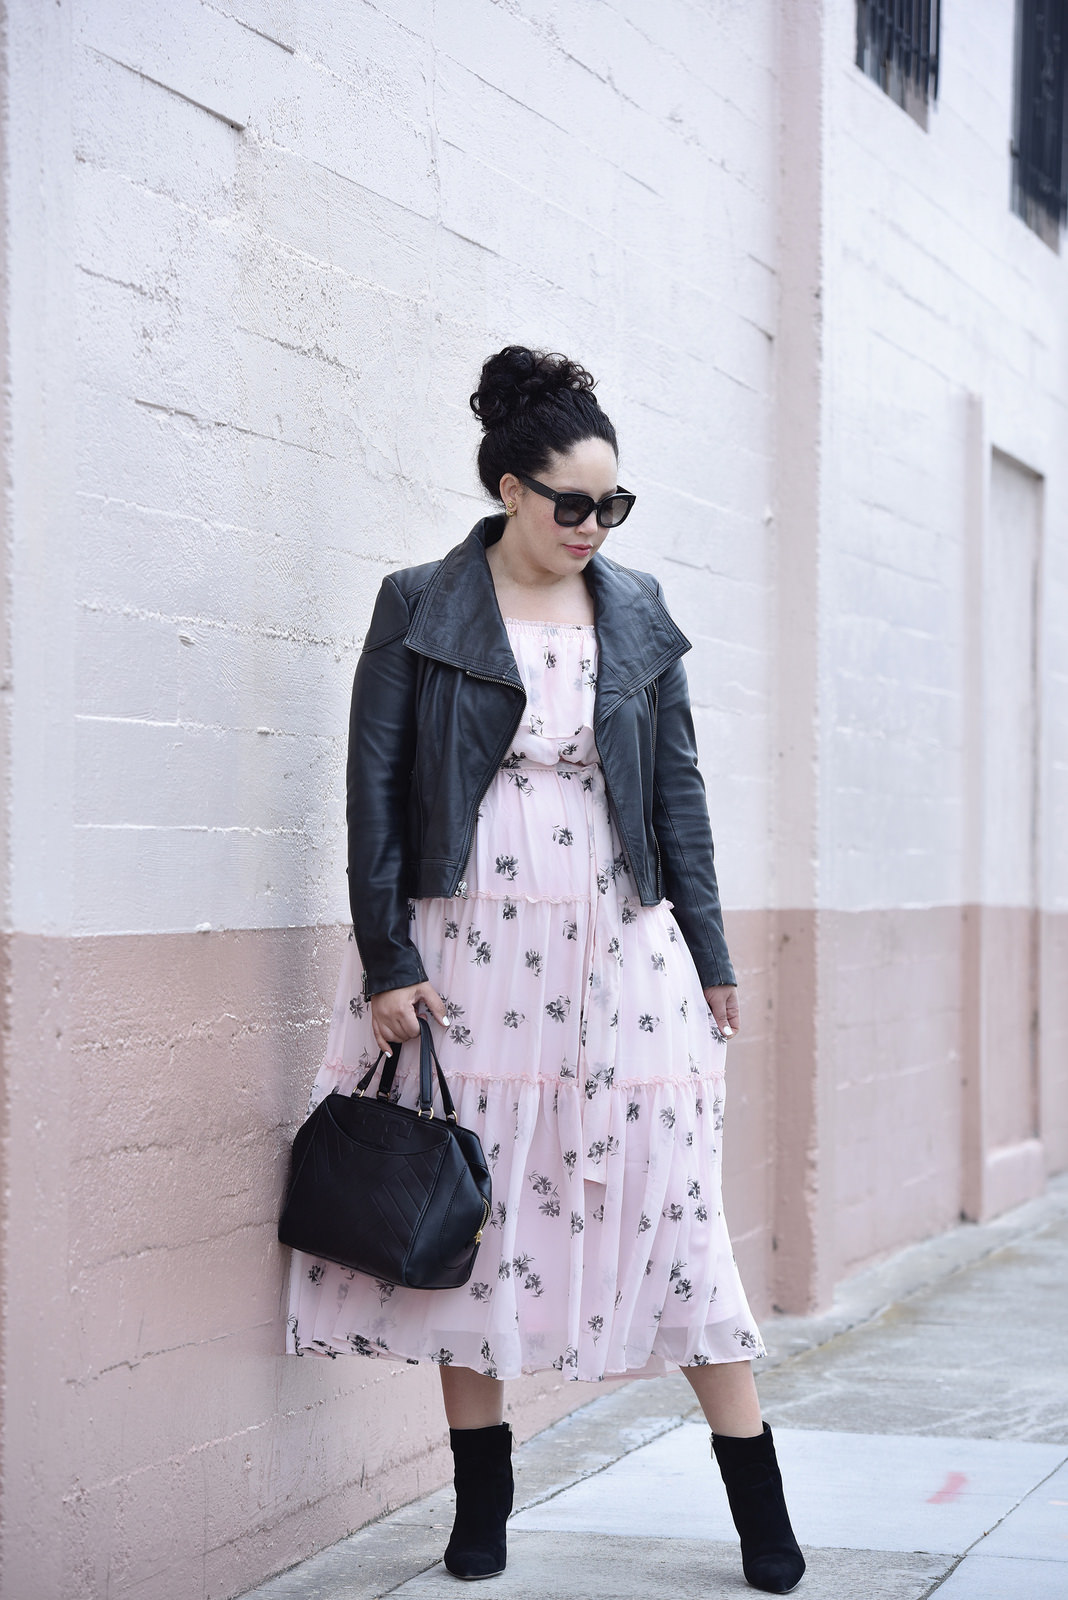 An Easy Way To Make A Floral Dress More Interesting Via @GirlWithCurves